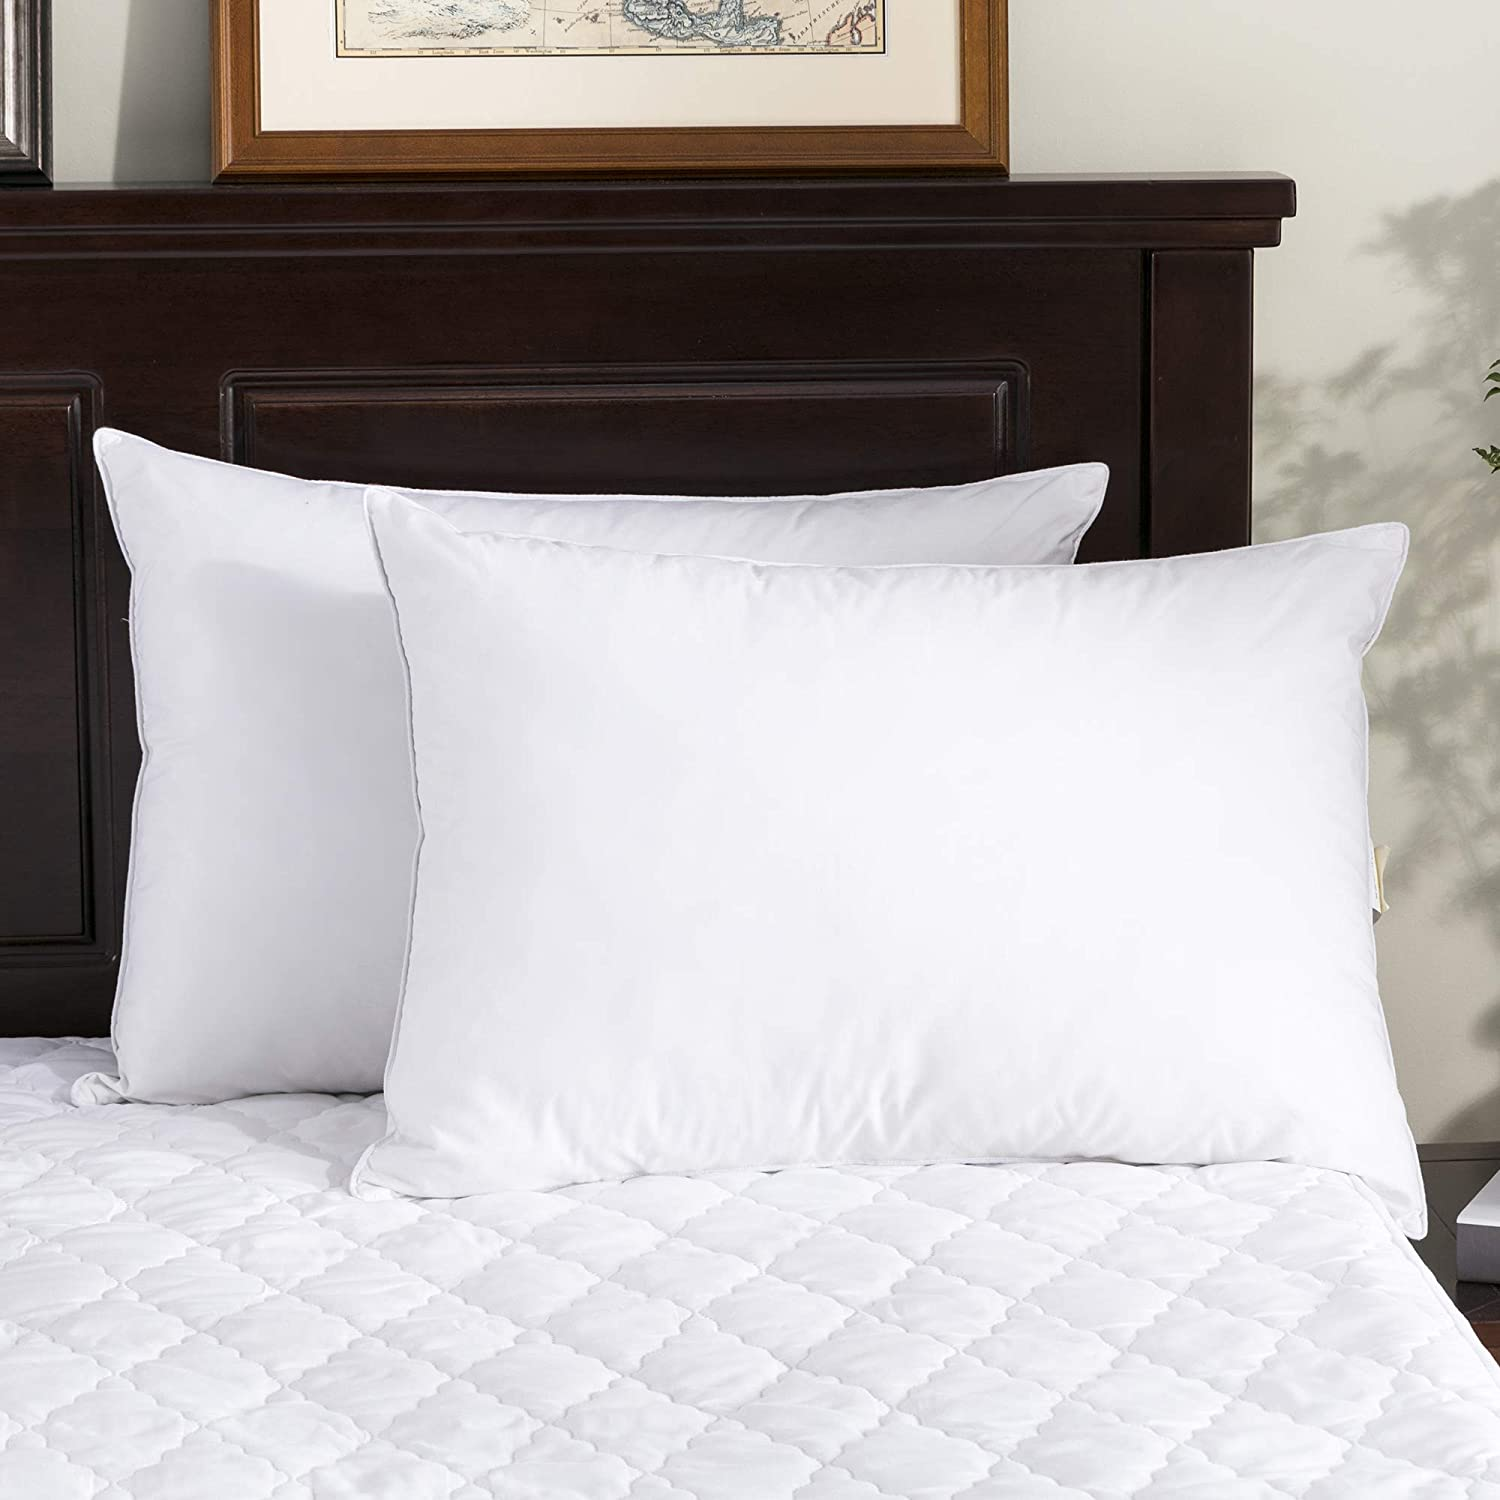 puredown Standard Size Soft Down Feather Bed Pillows Sleeping Washable-Standard Size-2 packs-100/% Cotton Cover